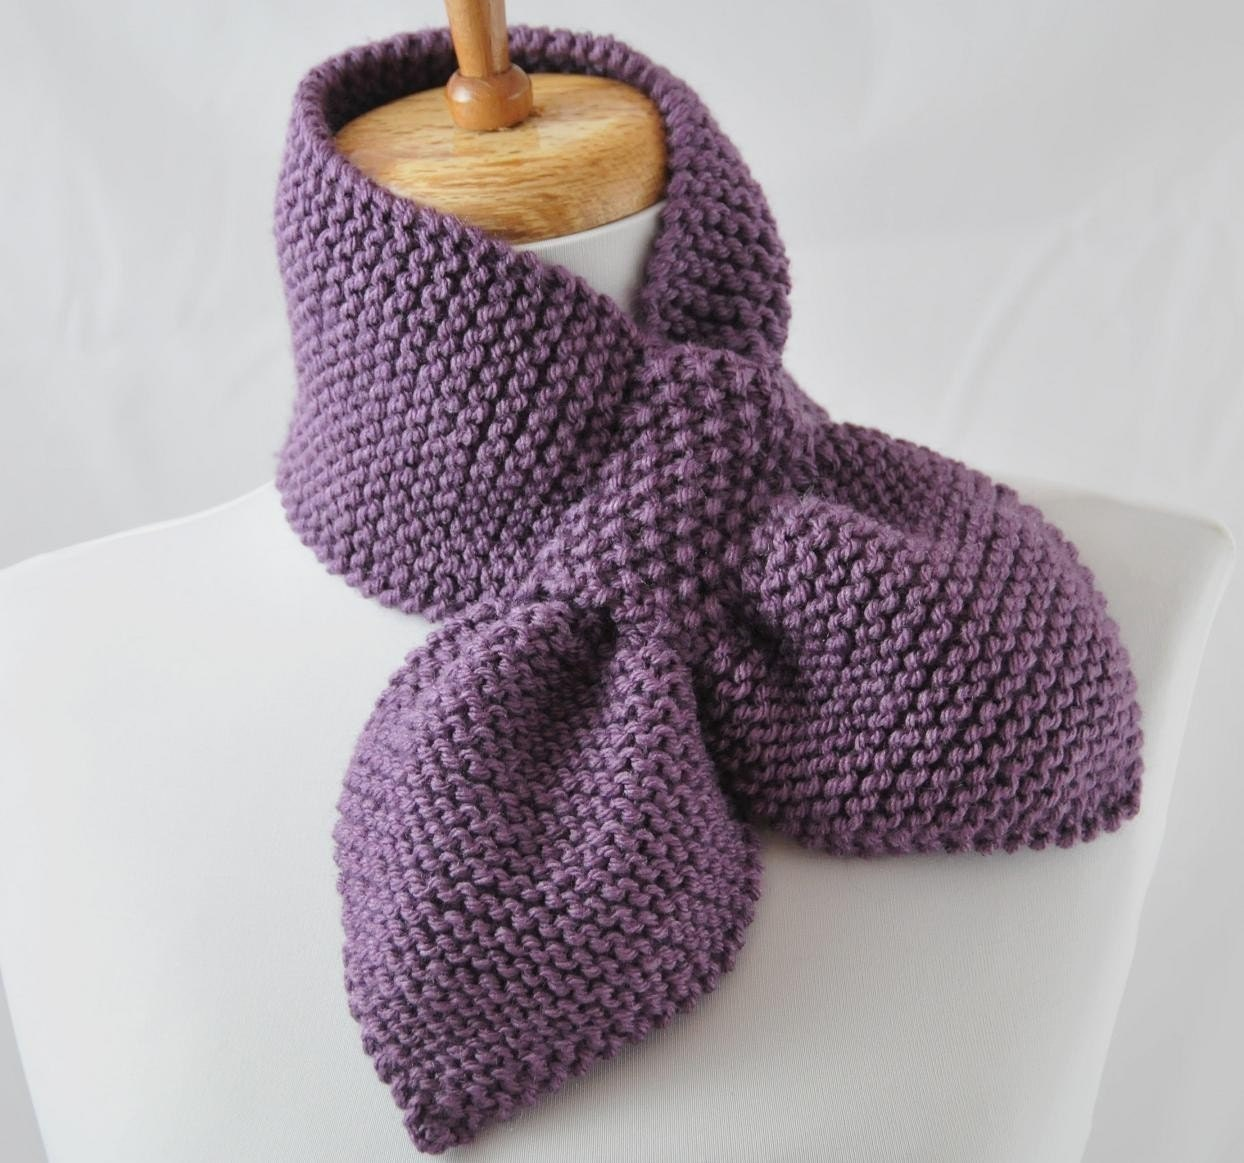 Knitting Pattern Only Stay Put Scarf by PhylPhil on Etsy